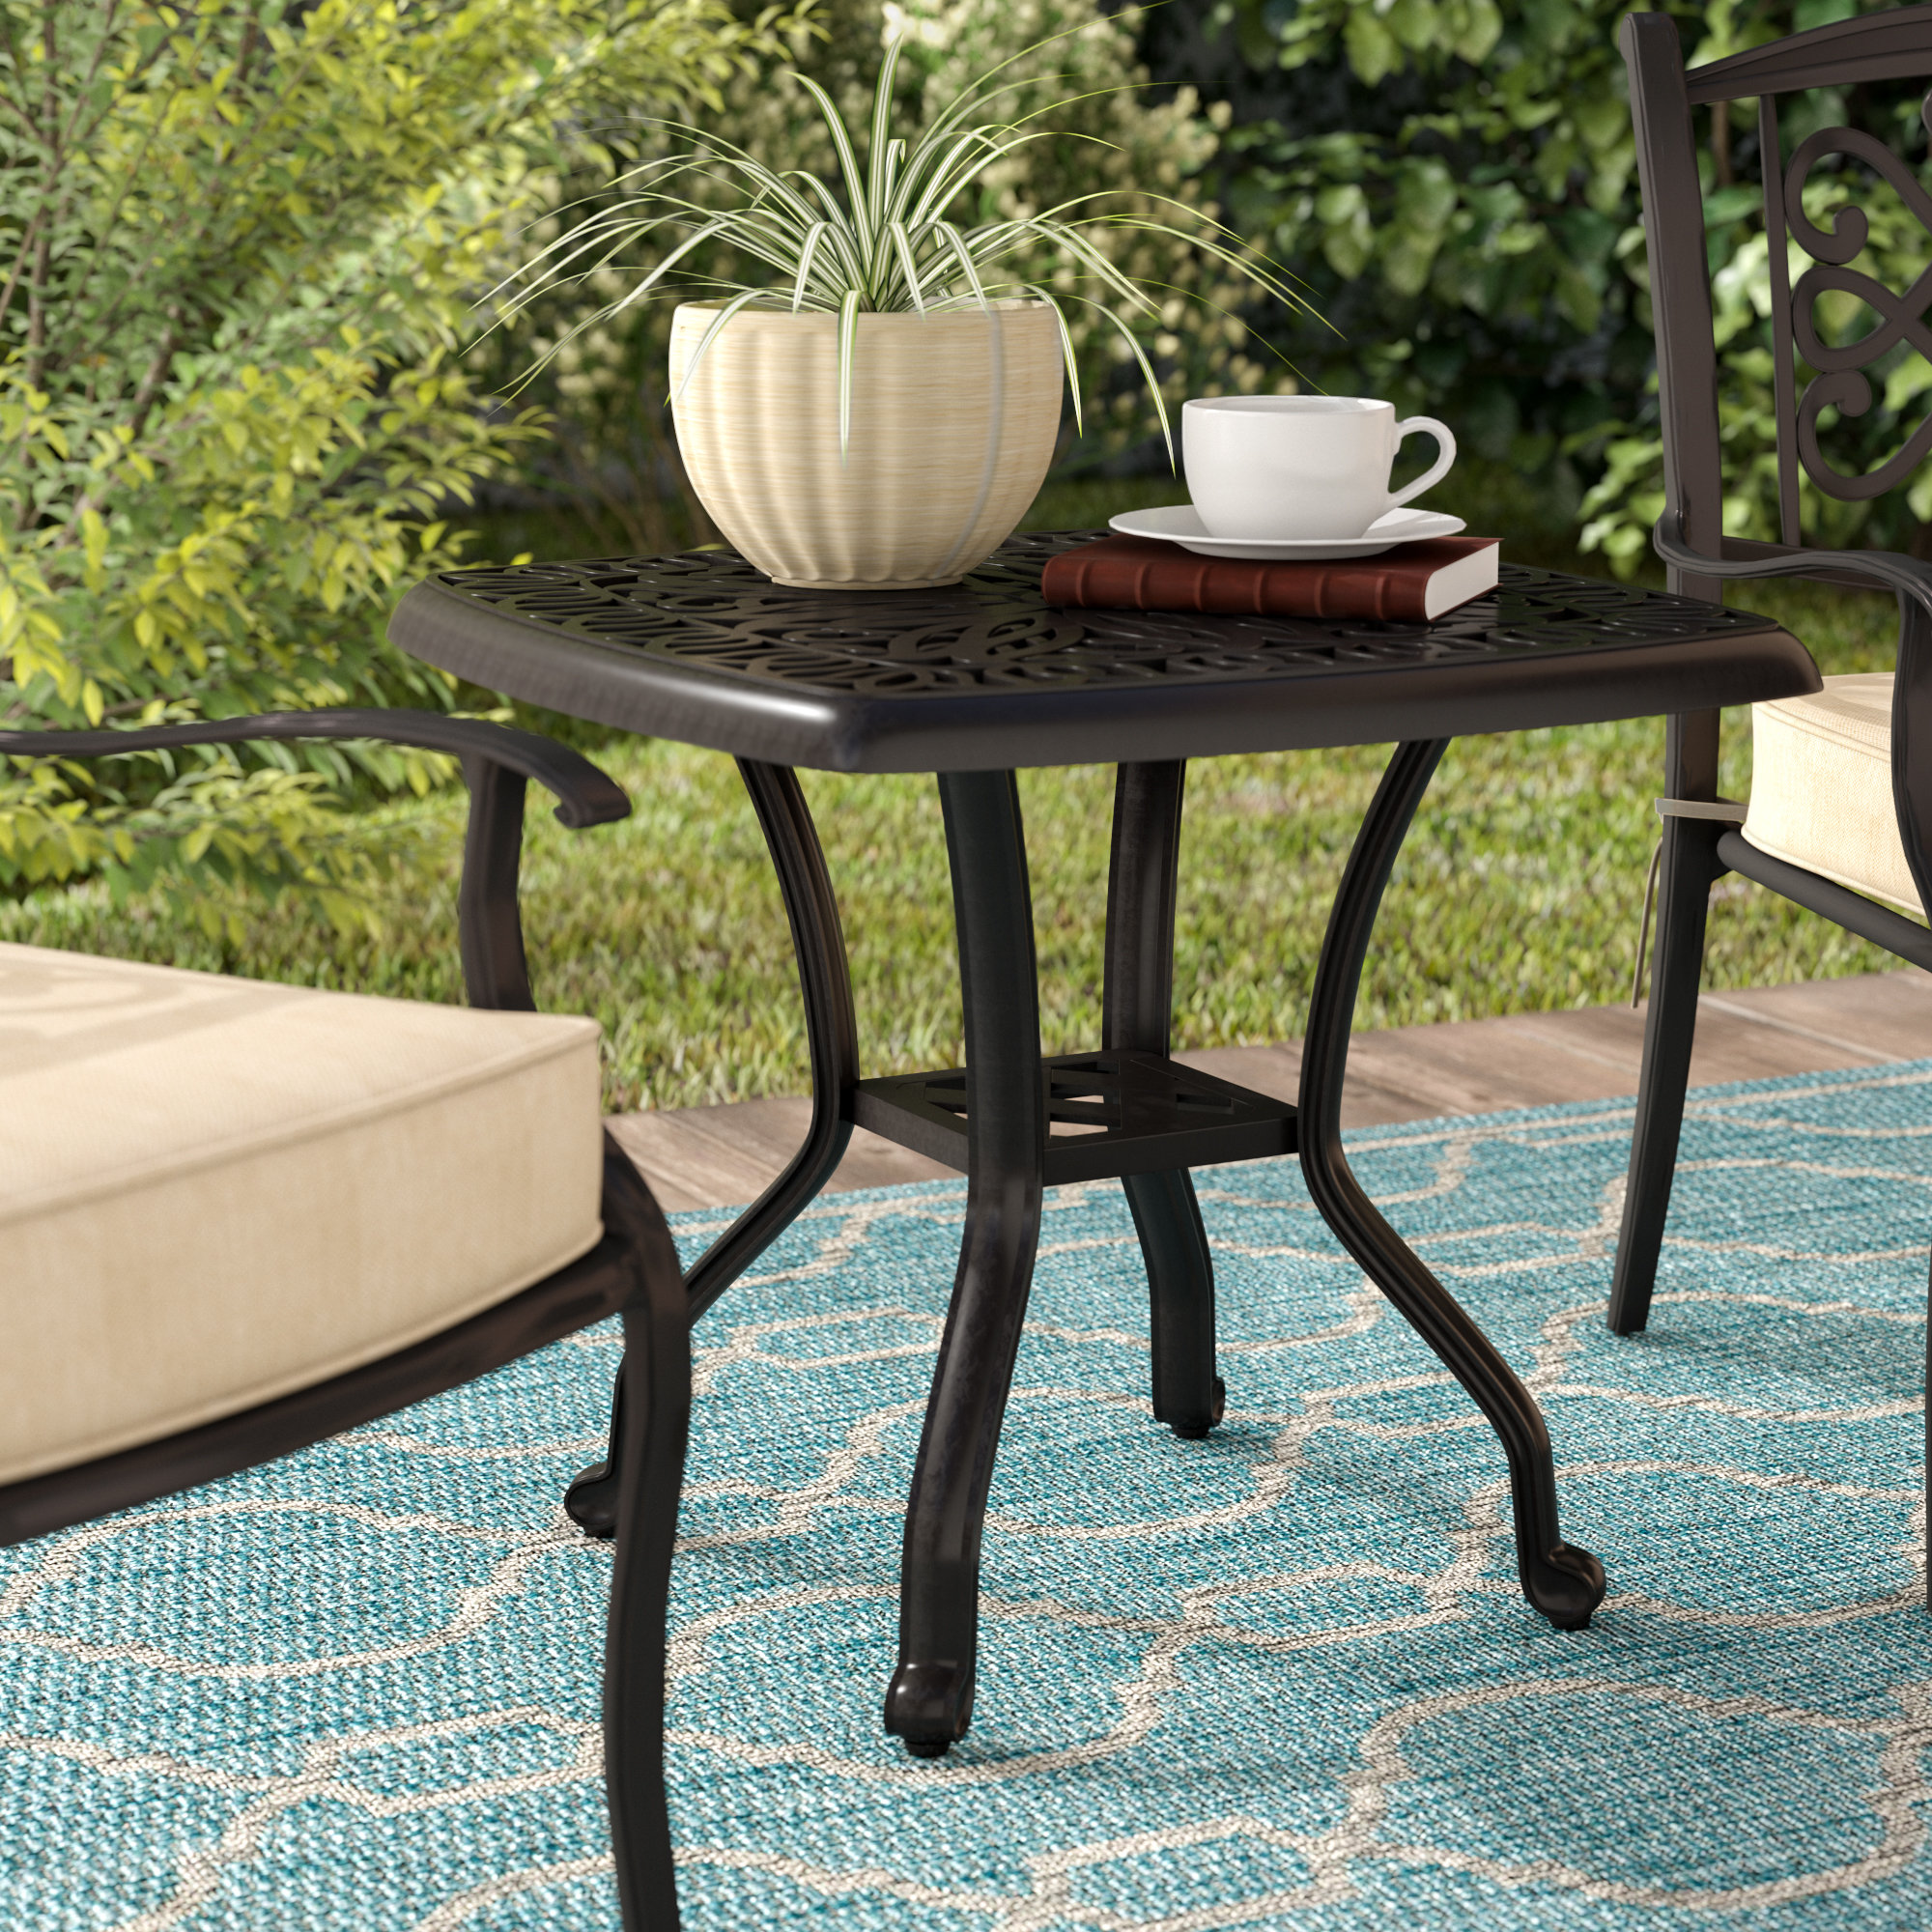 darby home kristy side table reviews middletown accent patio threshold windham door cabinet fancy tablecloths round metal and glass end tables turquoise dresser folding coffee pub